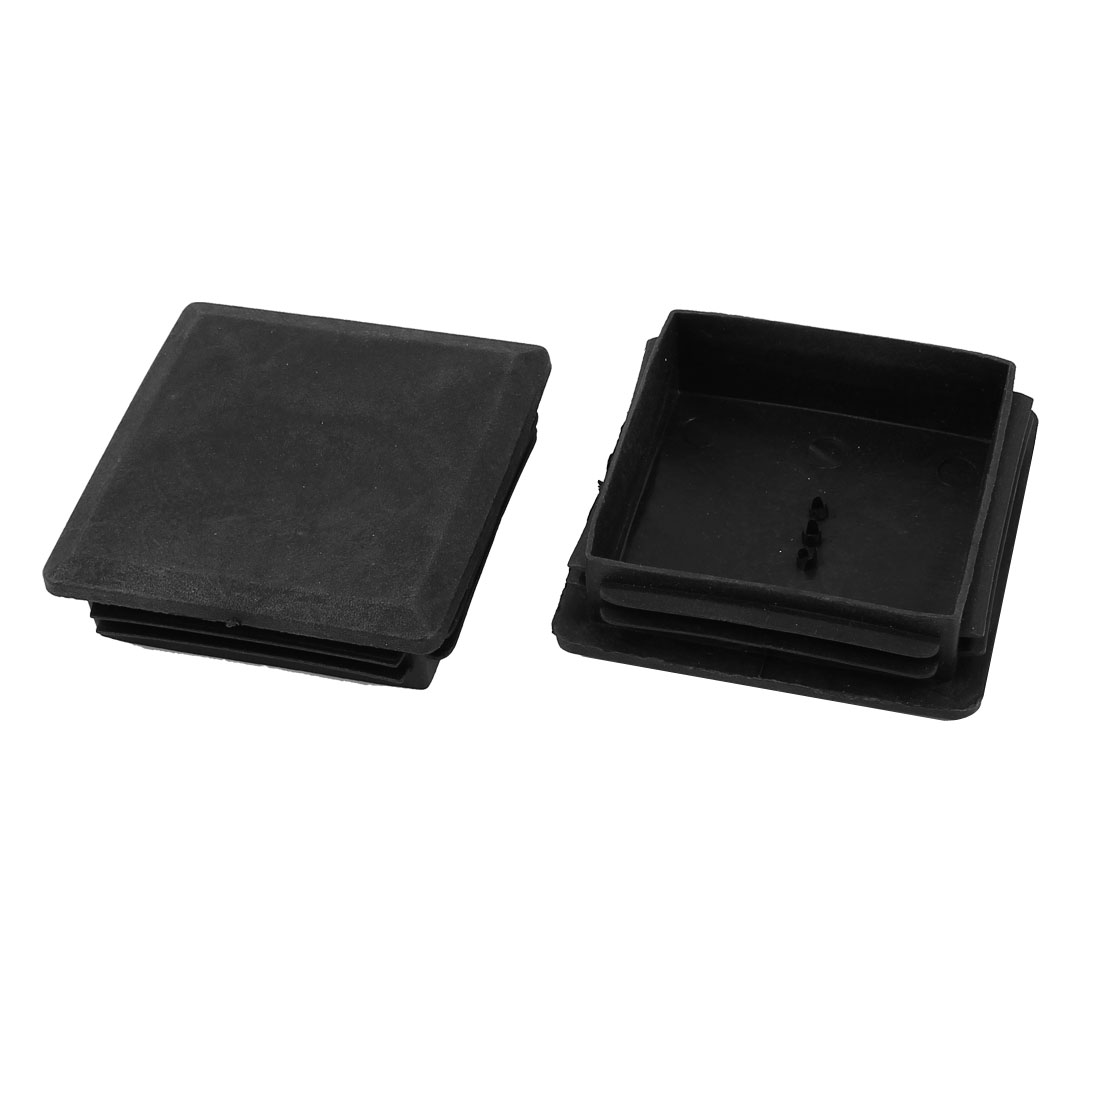 2 Pieces Black Plastic Square Blanking End Caps Tubing Tube Inserts 80mm x 80mm